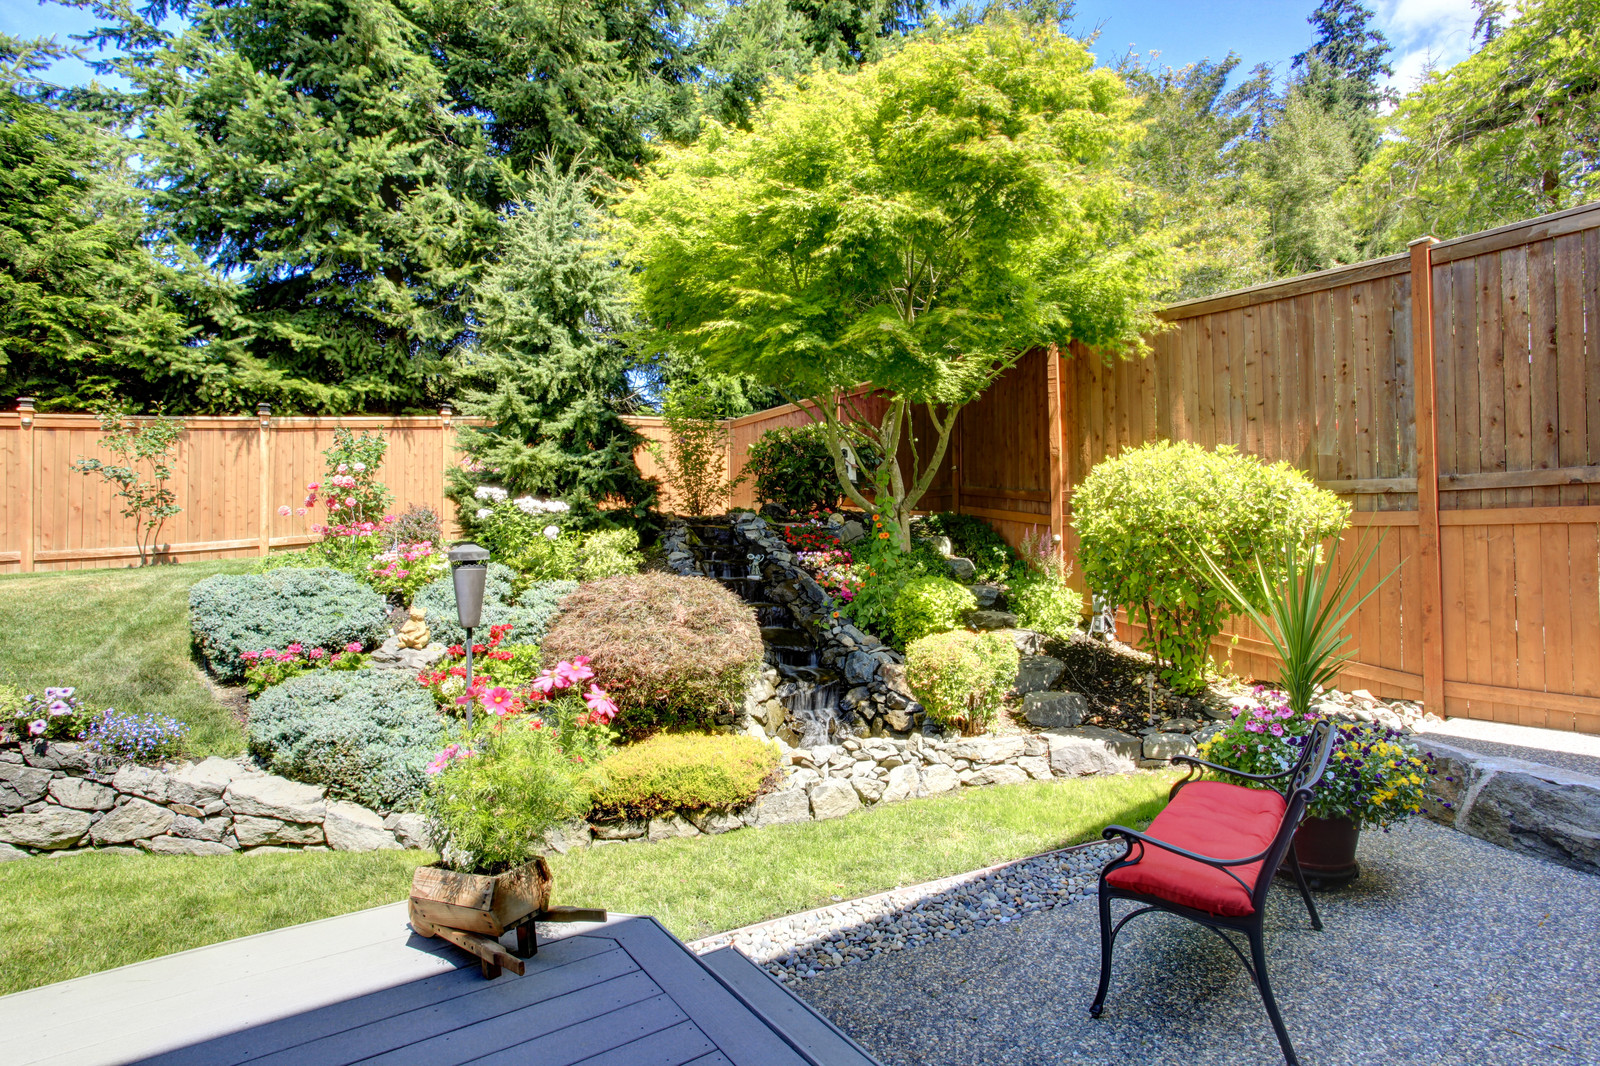 Trees absorb the water running off your property and stop pollutants from entering community waterways.